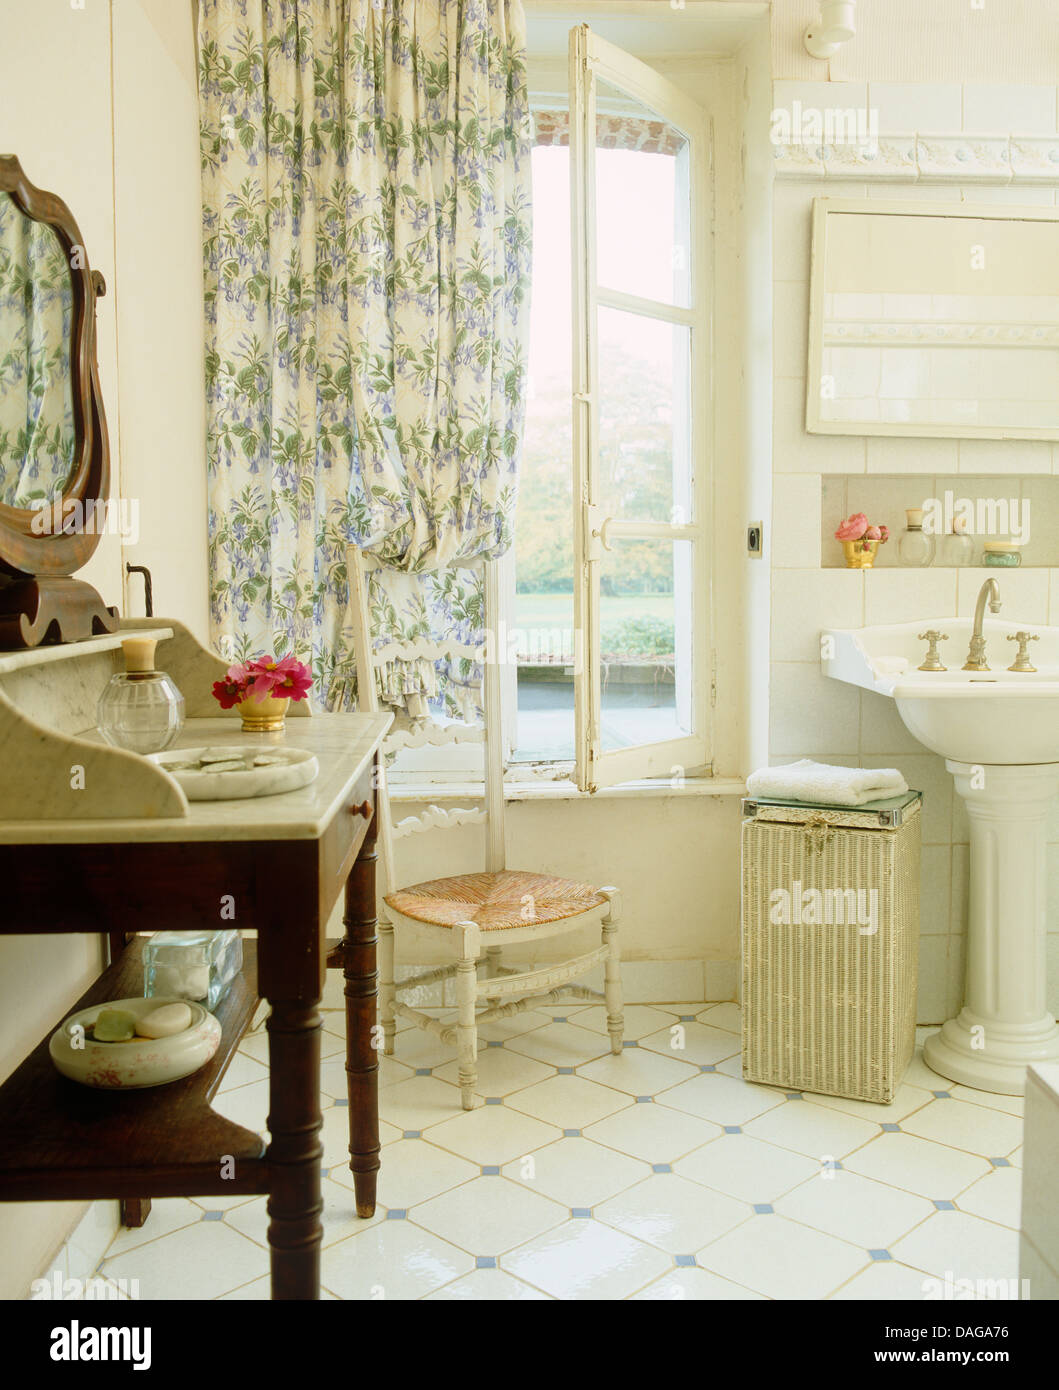 Marble Topped Washstand And White Tiled Floor In French Country Stock Photo Alamy